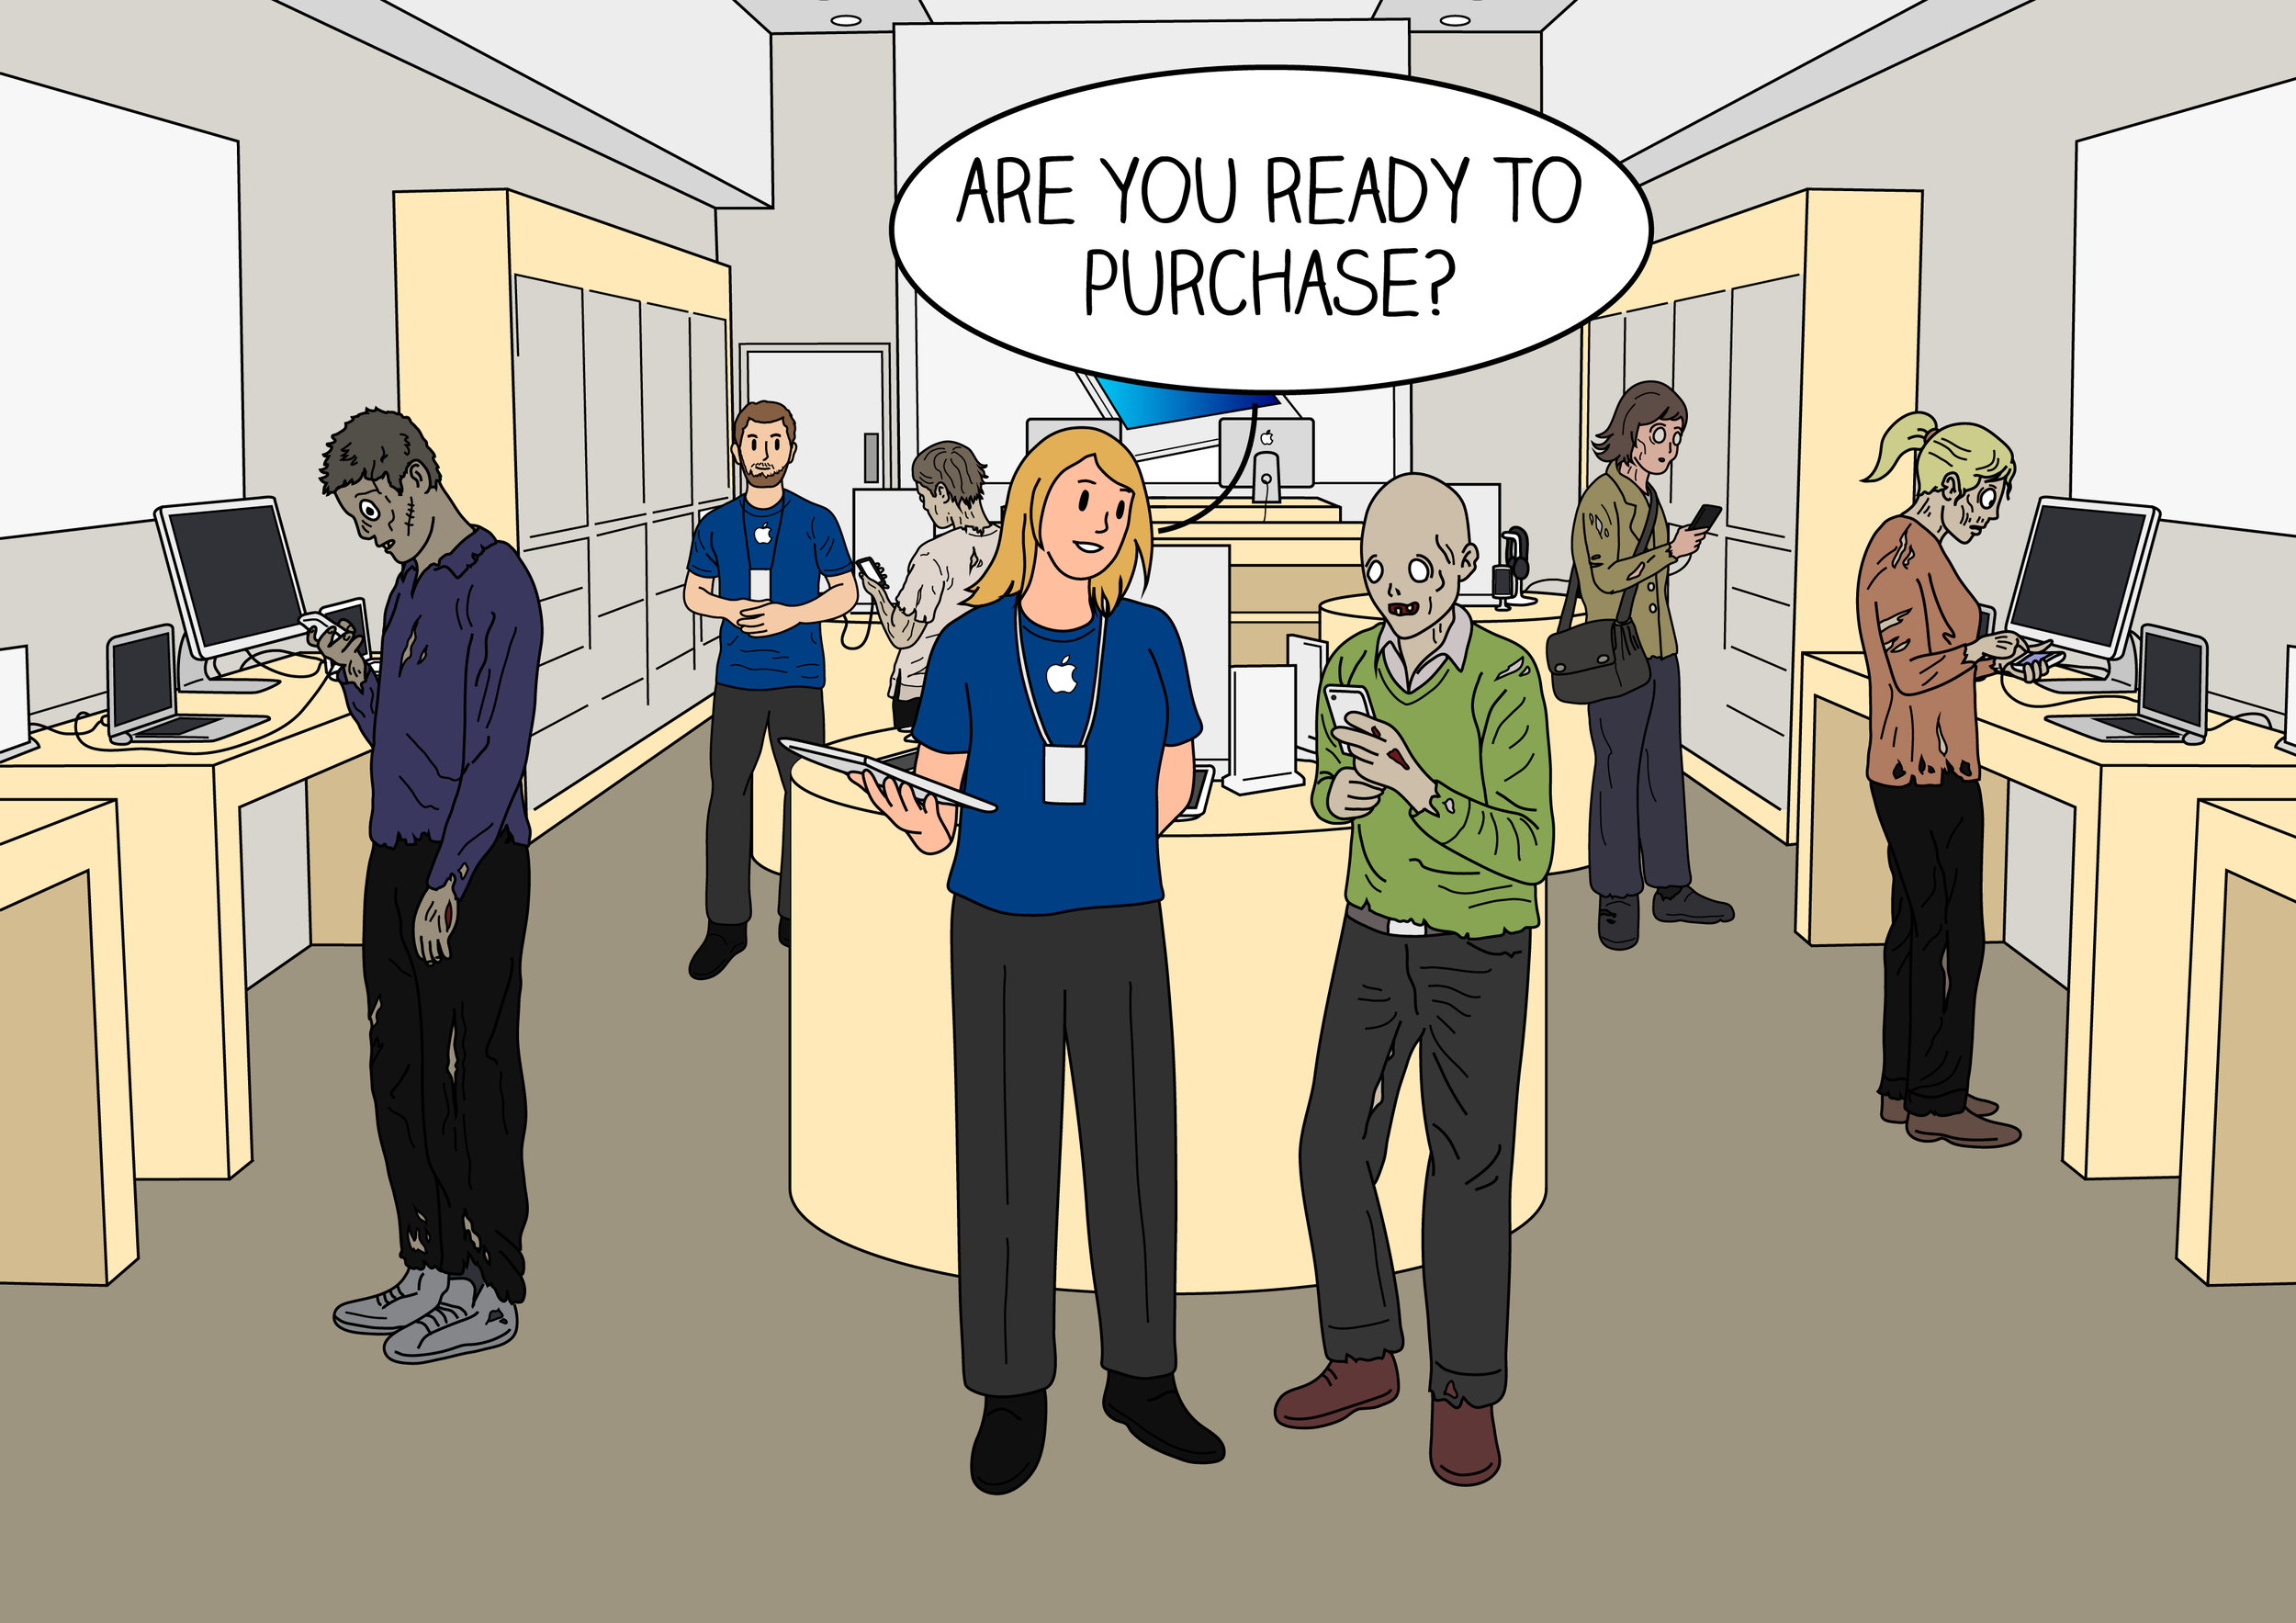 Apple_Store-01.png